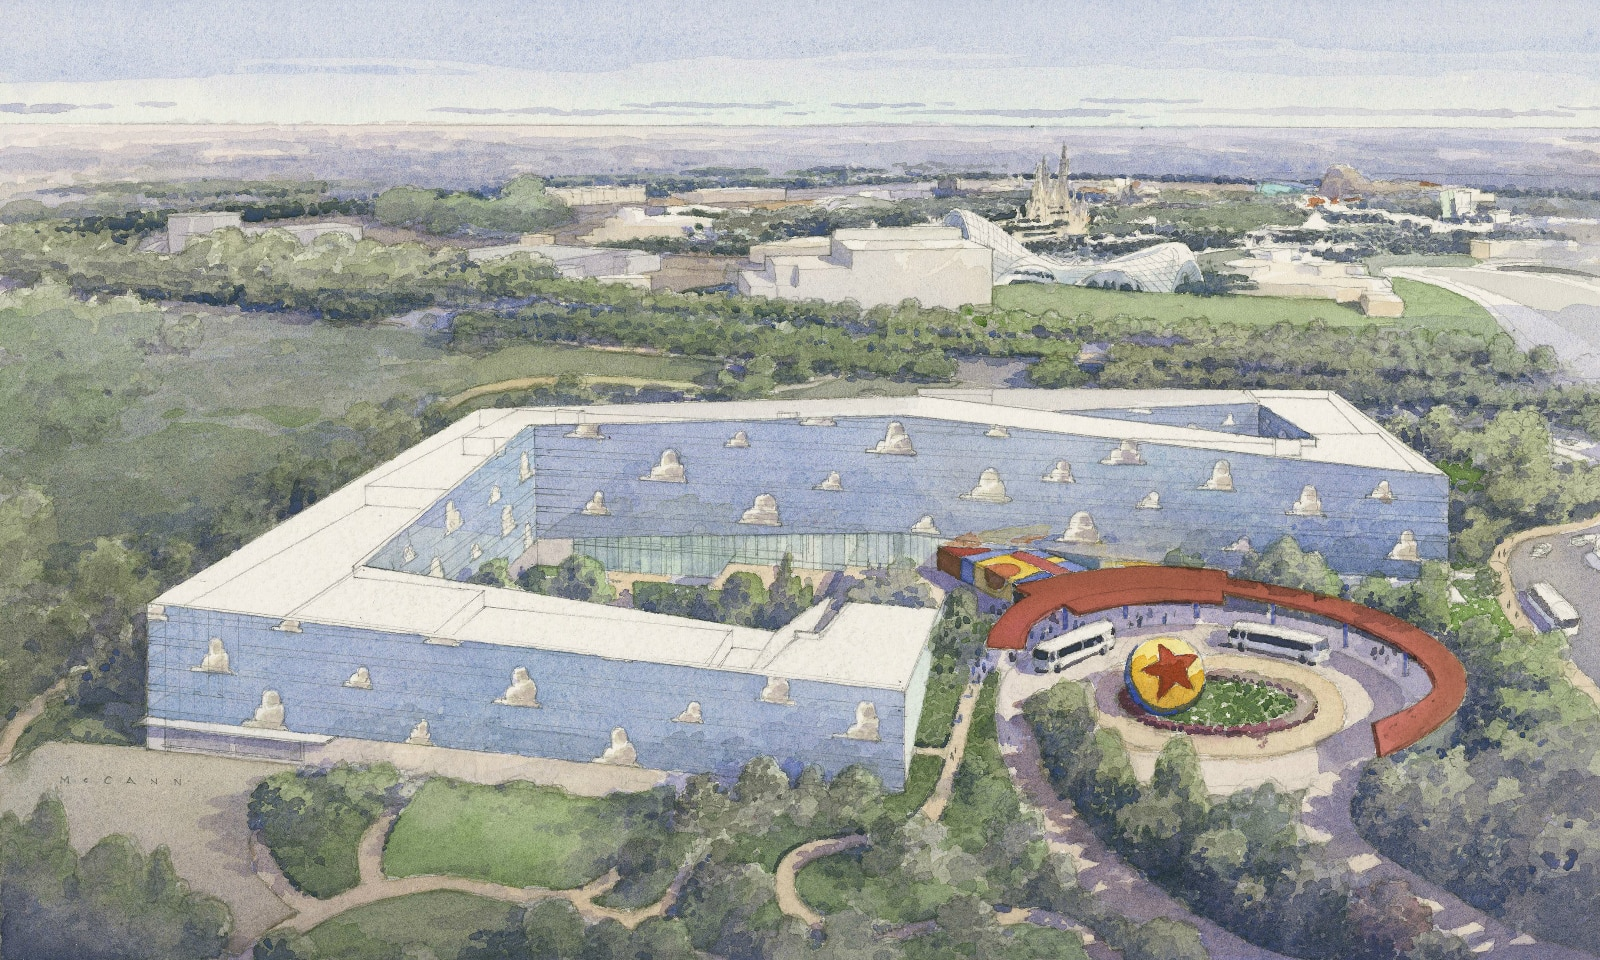 Shanghai Disney Resort Unveils and Artist Rendering for the Toy Story Hotel